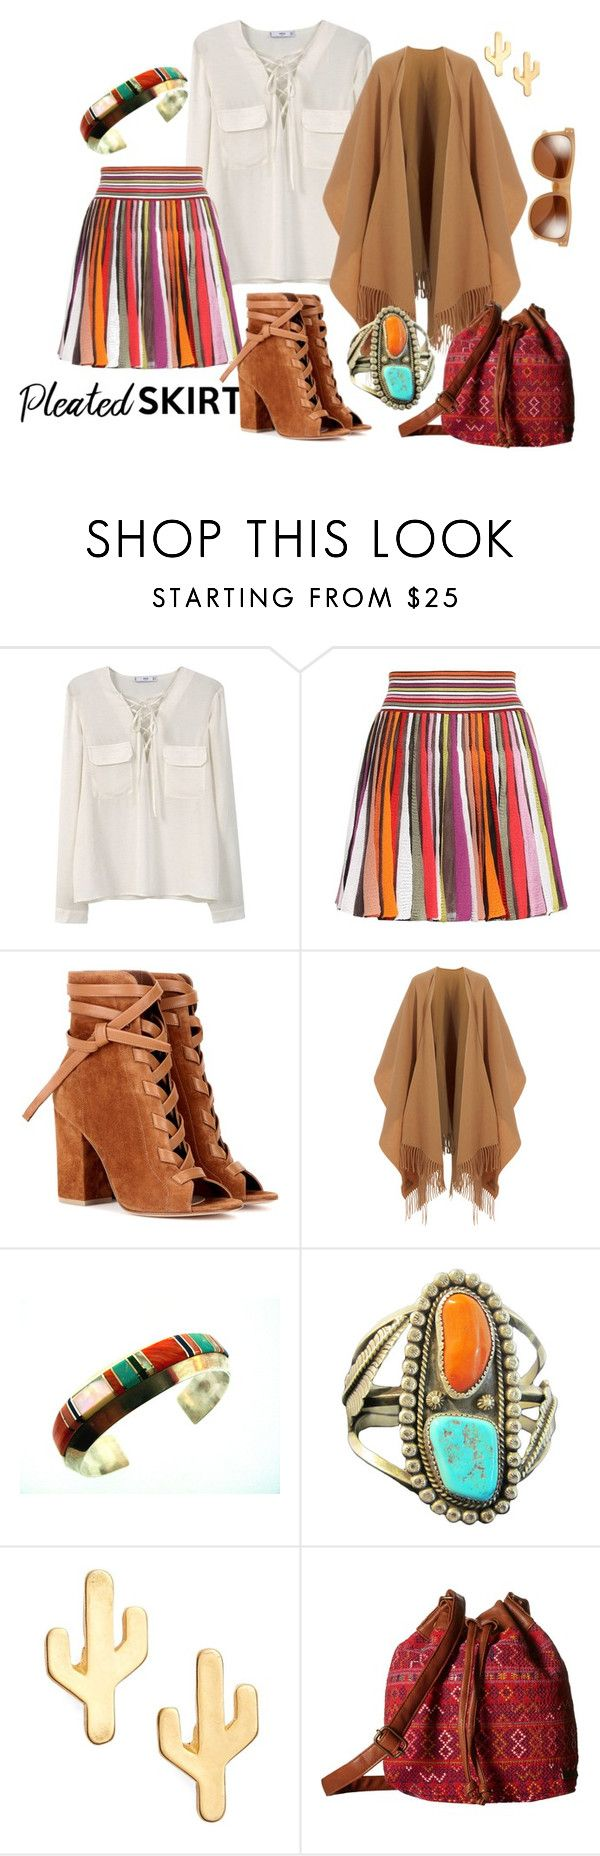 """Pleated Skirt in Arizona"" by lifestyle-alisa ❤ liked on Polyvore featuring MANGO, Missoni, Gianvito Rossi, Acne Studios, CAM, Billabong, Zeal Optics and pleatedskirts"